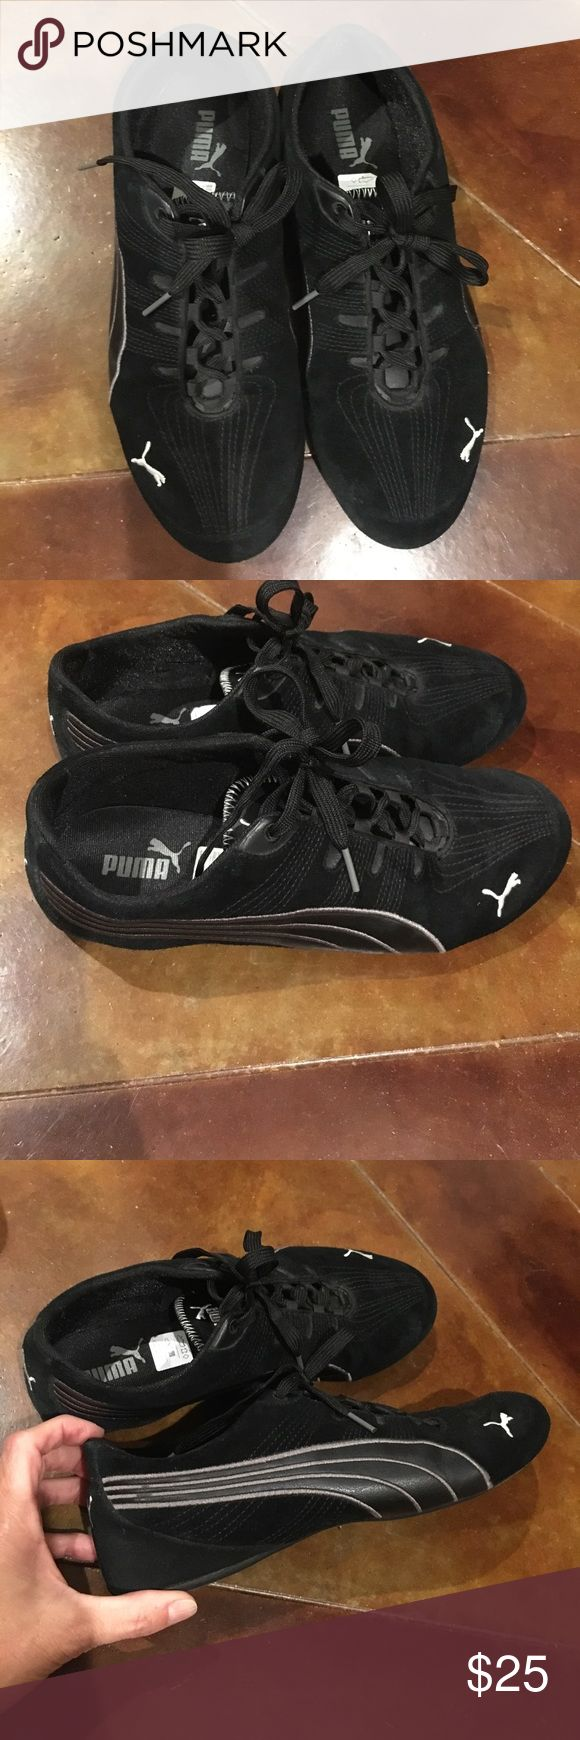 Size 8 1/2 black puma tennis shoes Like new black puma tennis shoes. Suede material with leather detail on side. Puma Shoes Sneakers